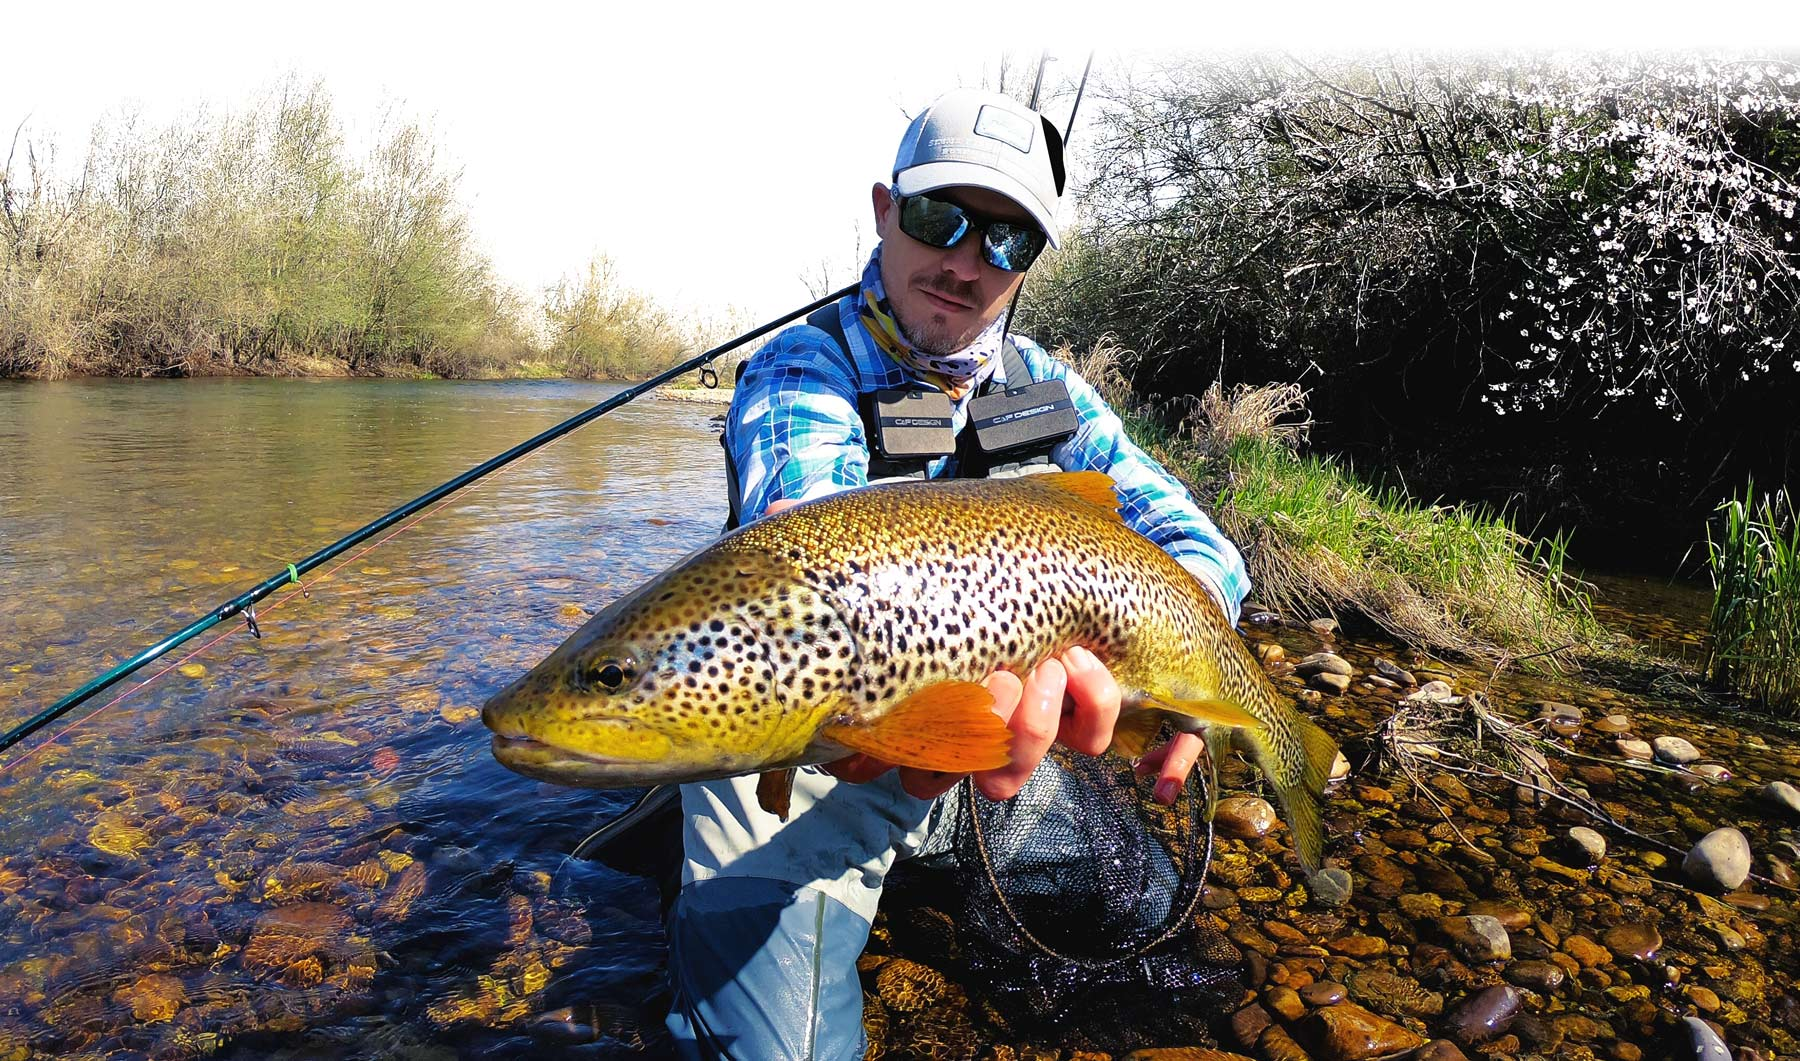 KRID Lifetime Fishing - Contacto